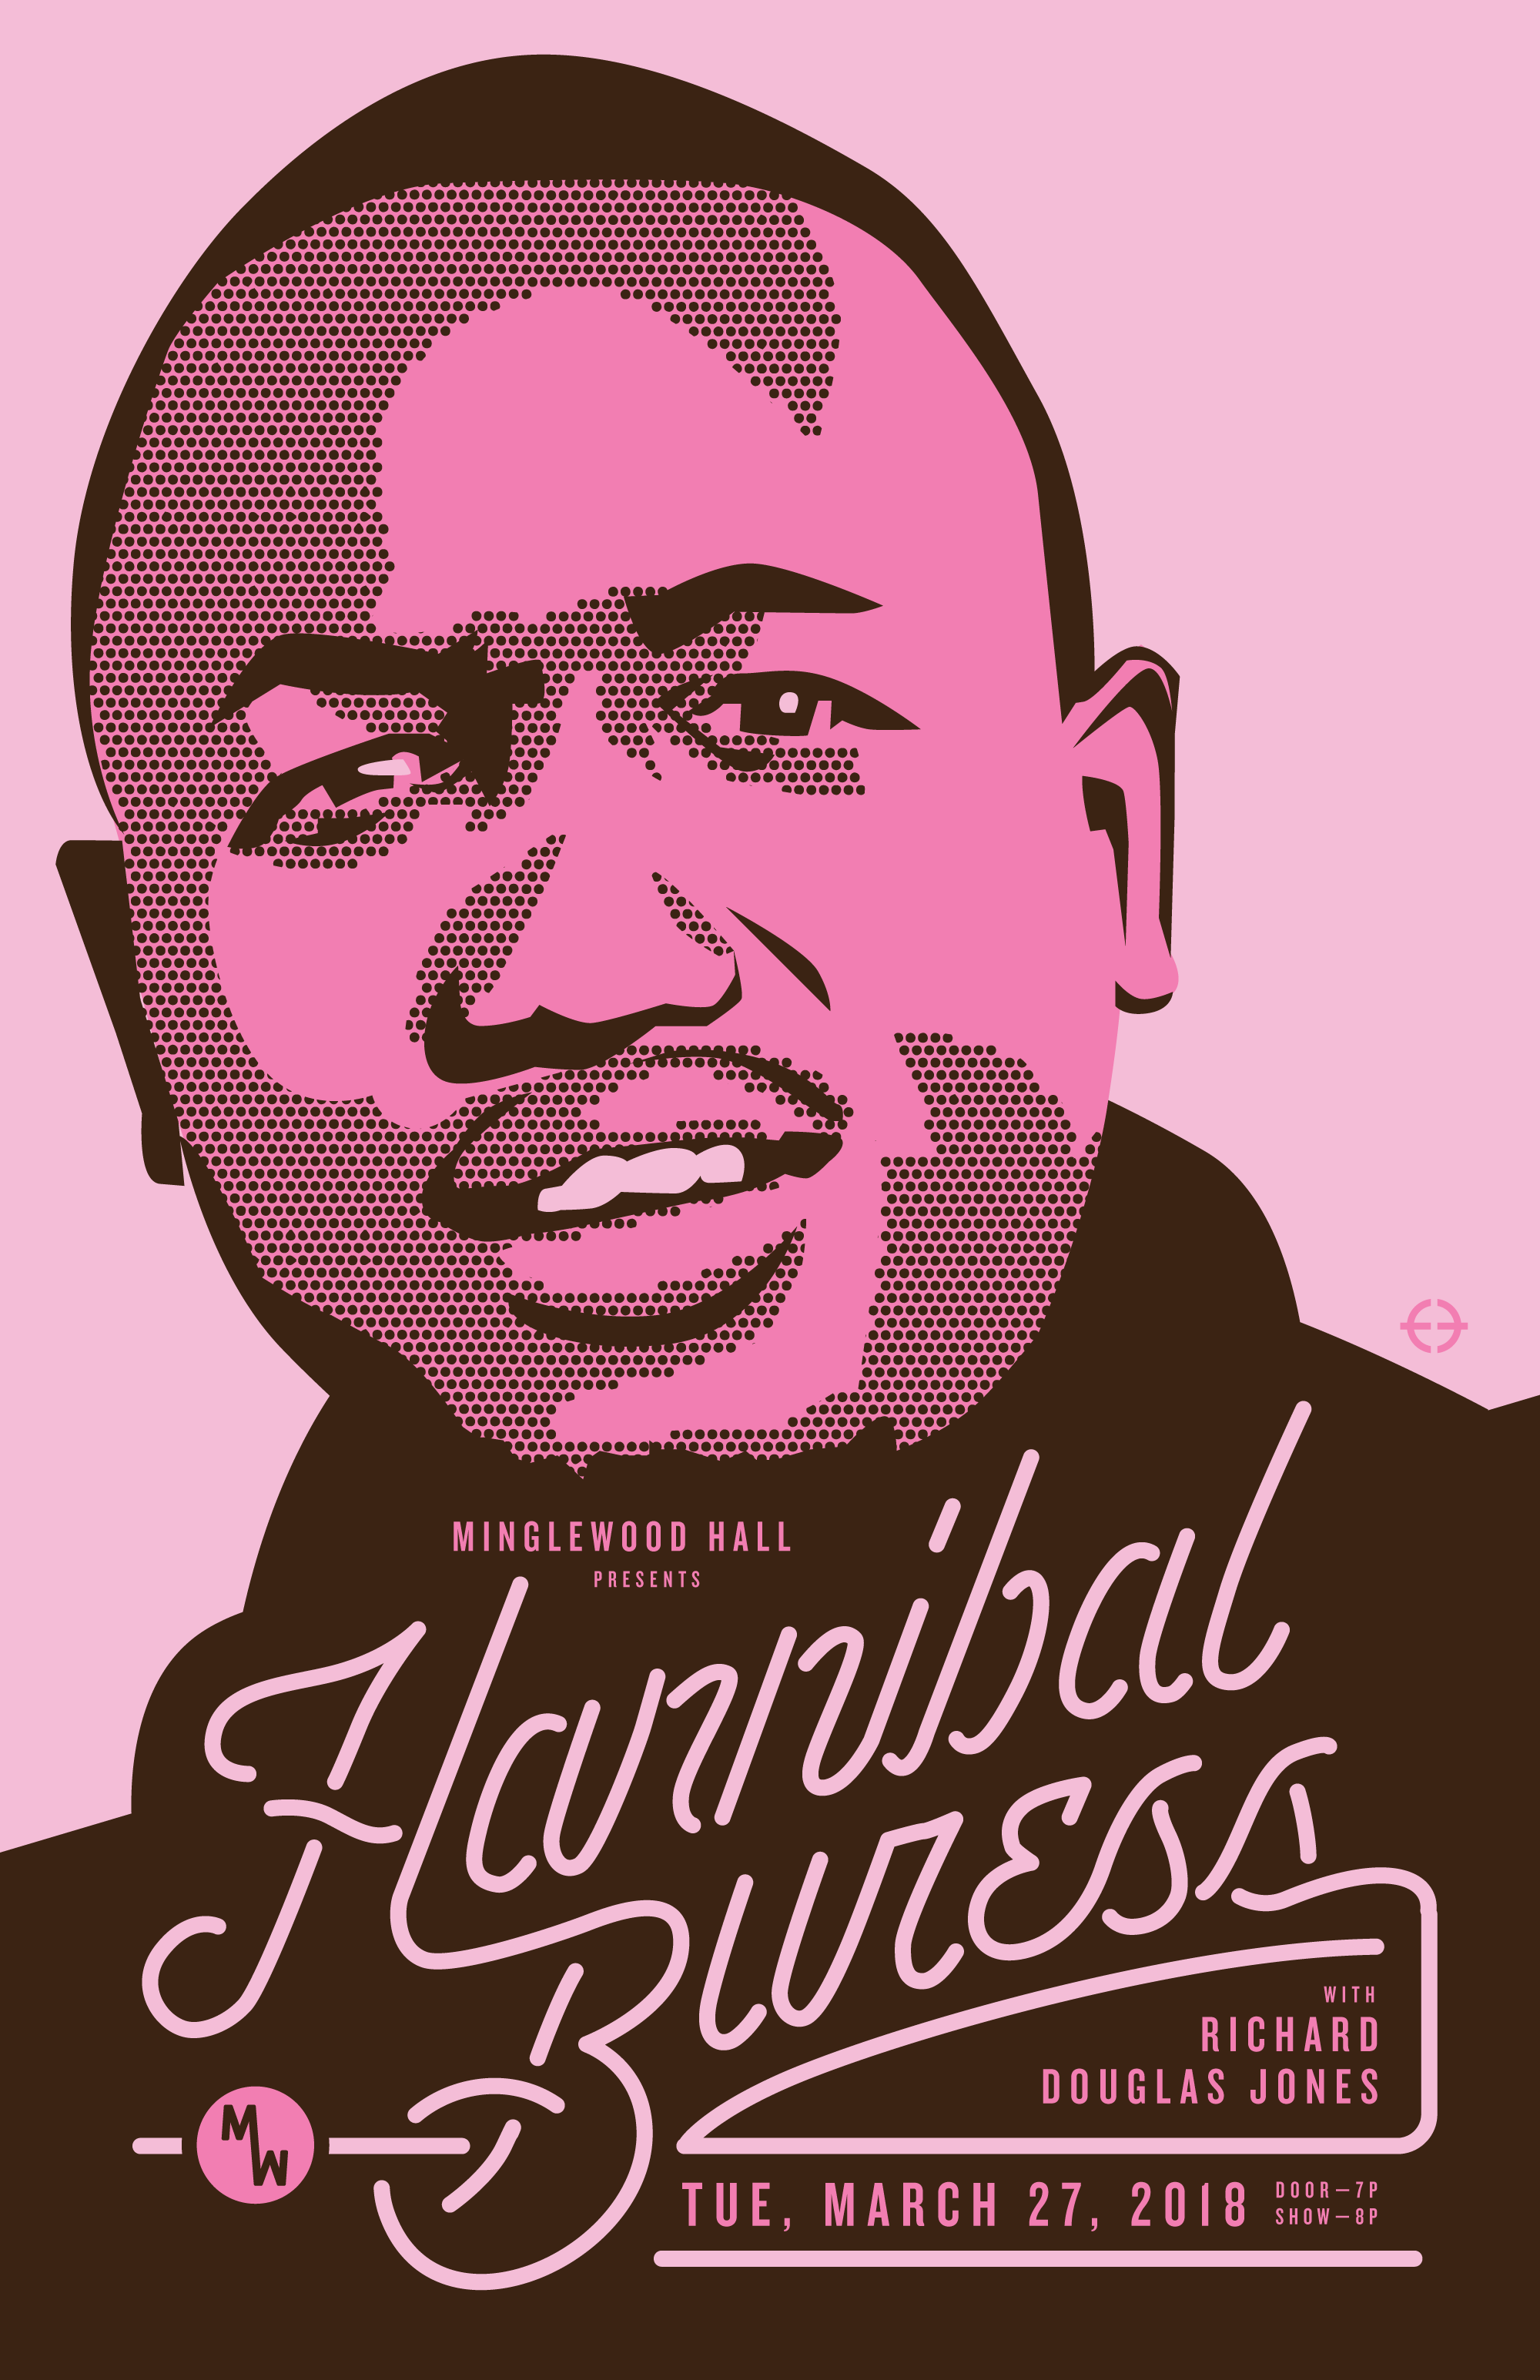 Hannibal Buress 2018